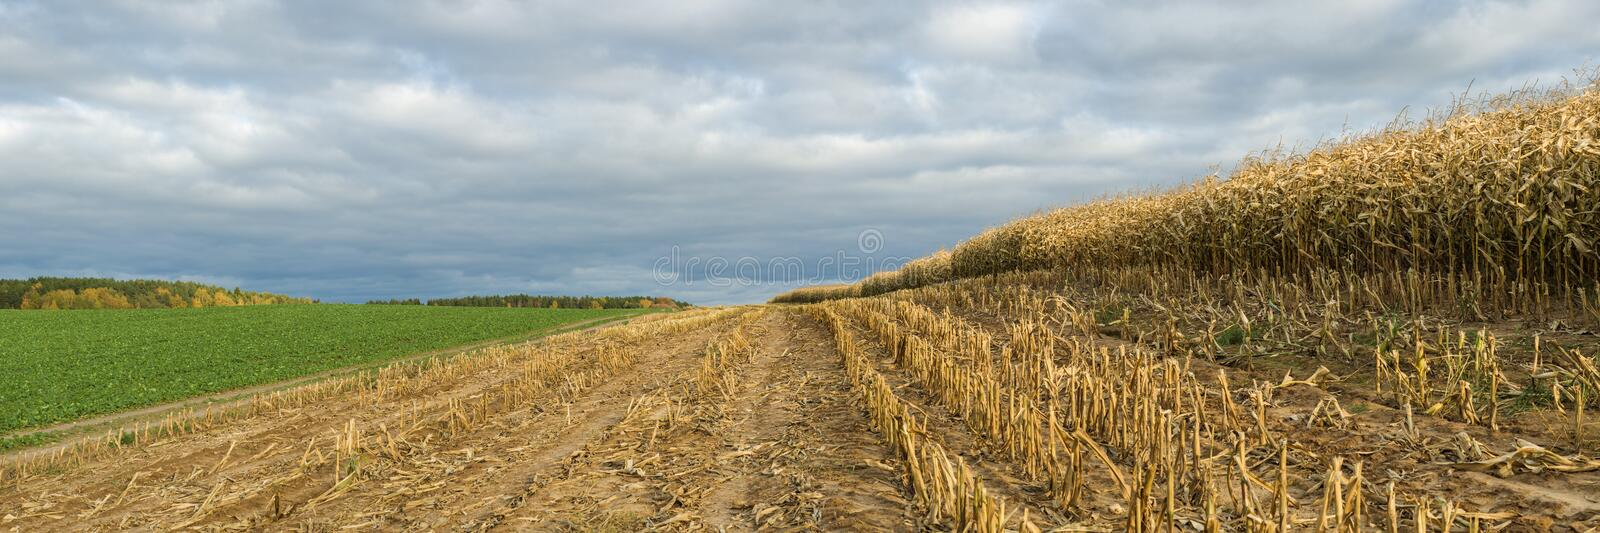 Autumn agricultural landscape. large panoramic view of a ripened cornfield with stubble on the edge of the field under an October stock photos